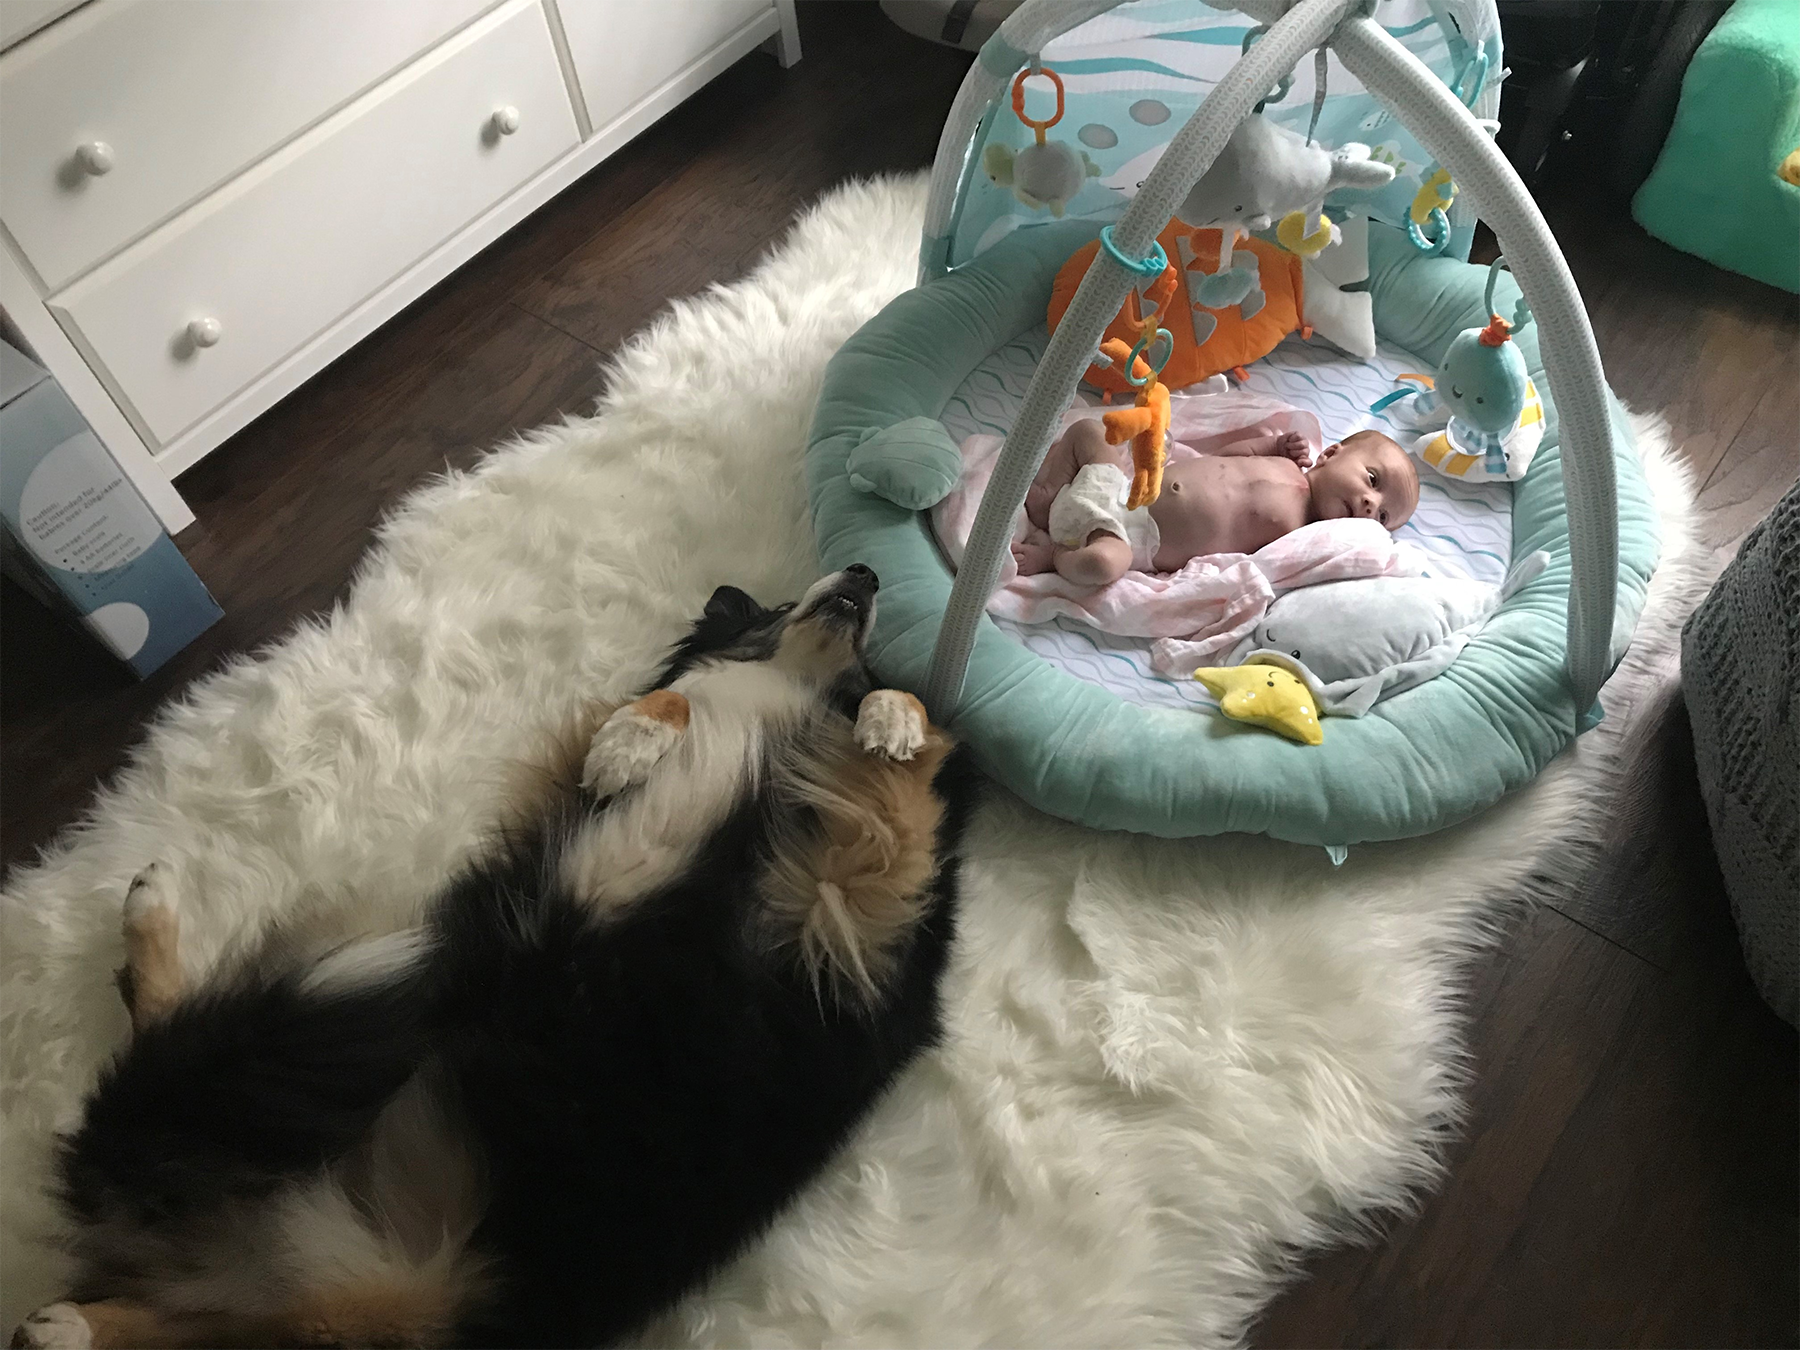 Riley is at home with her furry brother and sister, Brody and Stella. The Australian shepherds stay by her side as she grows stronger each day.